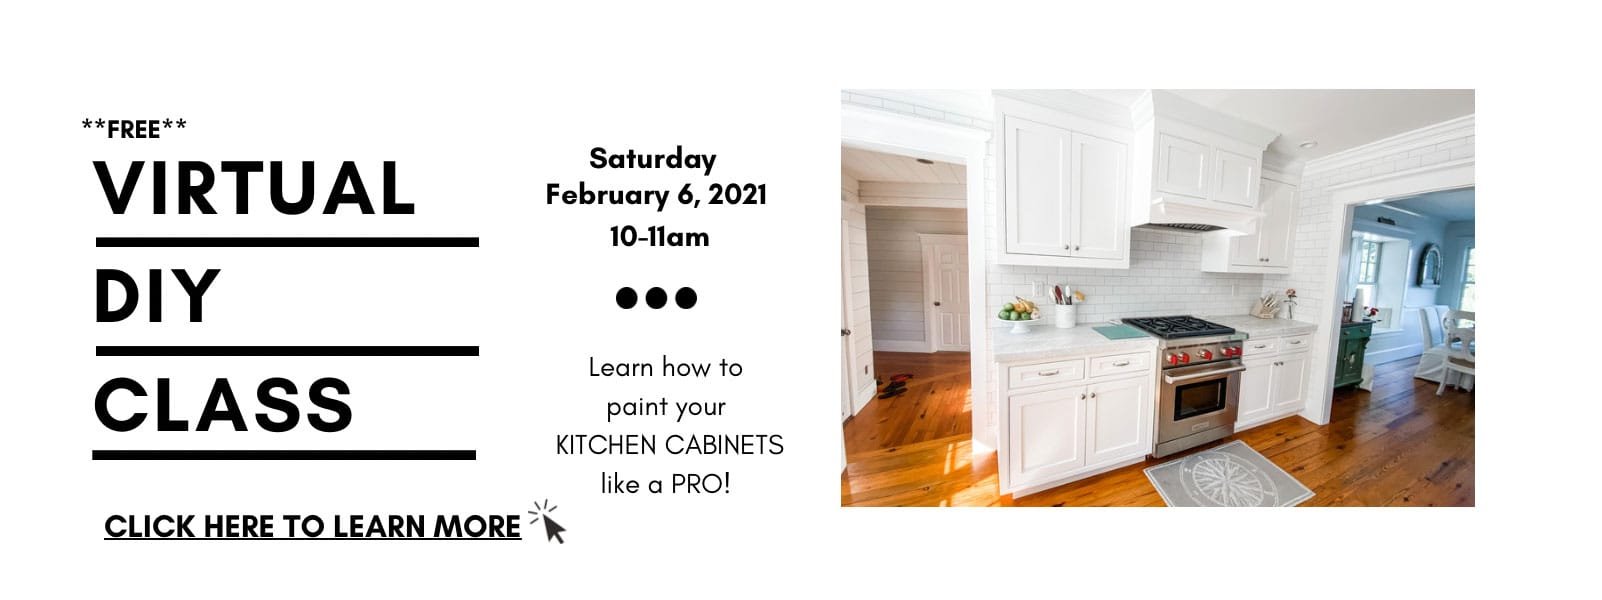 Upcoming Class: Learn to Paint your Kitchen Cabinets